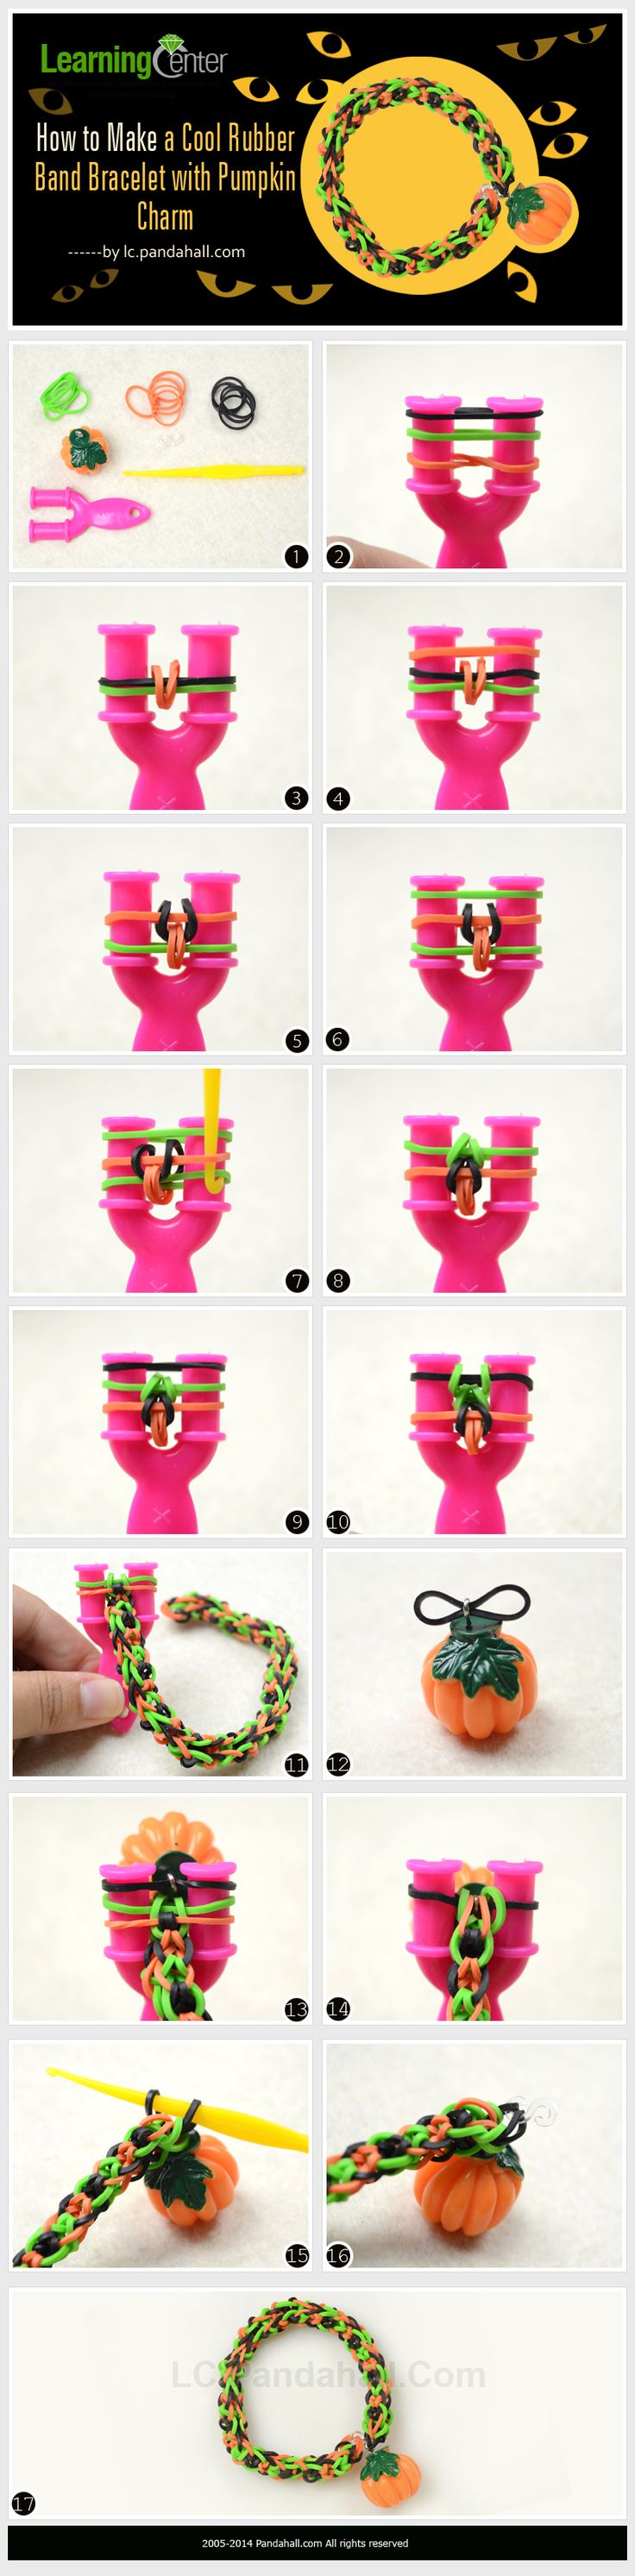 How to Make a Cool Rubber Band Bracelet with Pumpkin Charm